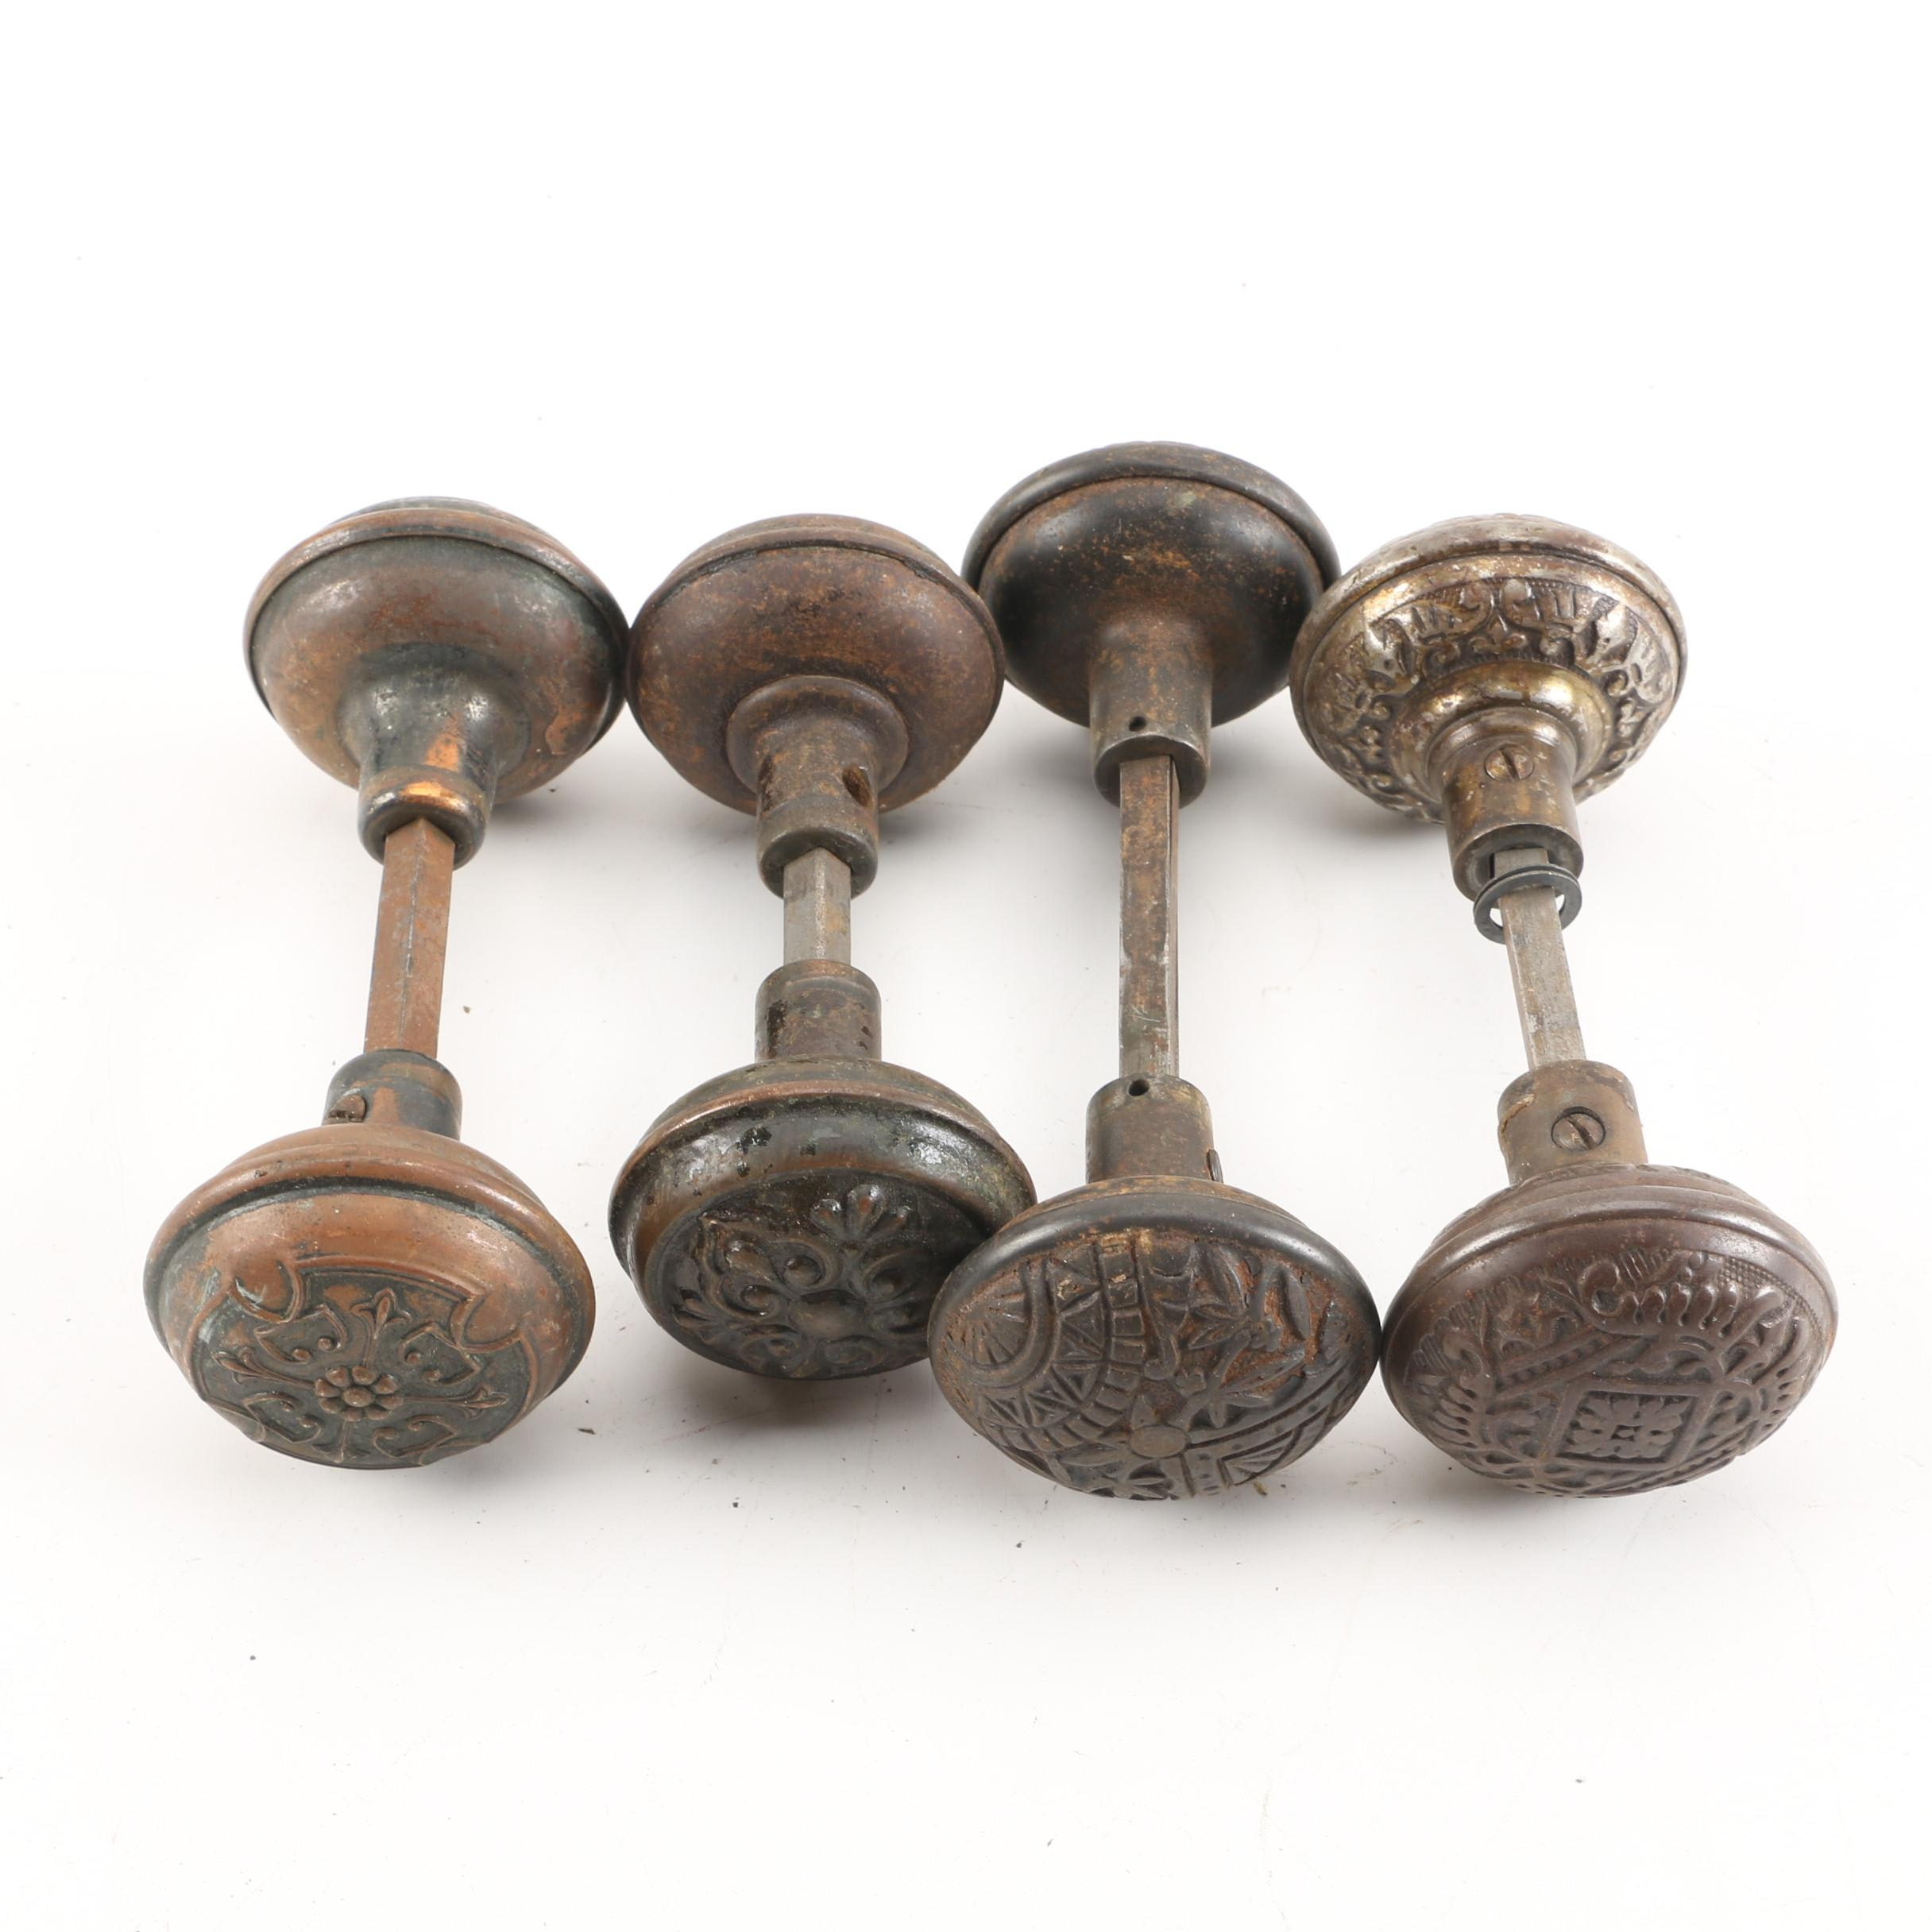 Vintage Metal Door Knobs Featuring Floral Repoussé ...